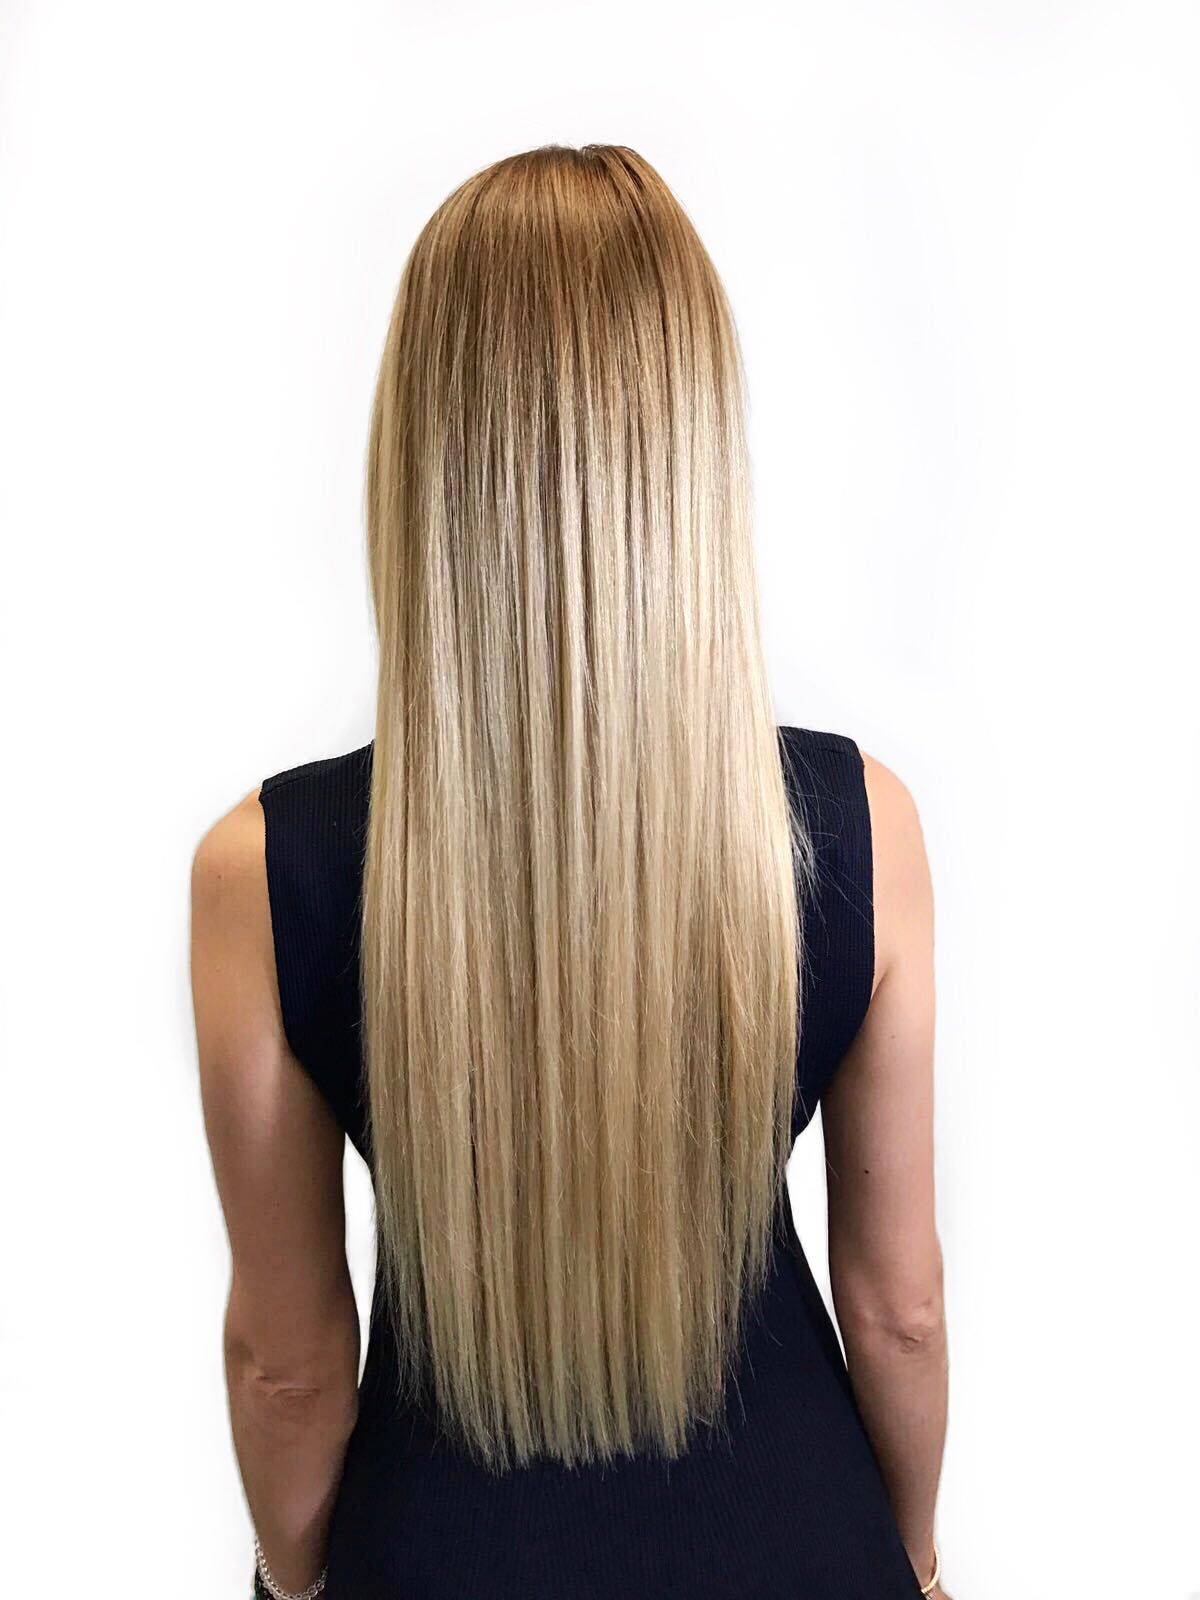 Soin keratine cheveux geneve